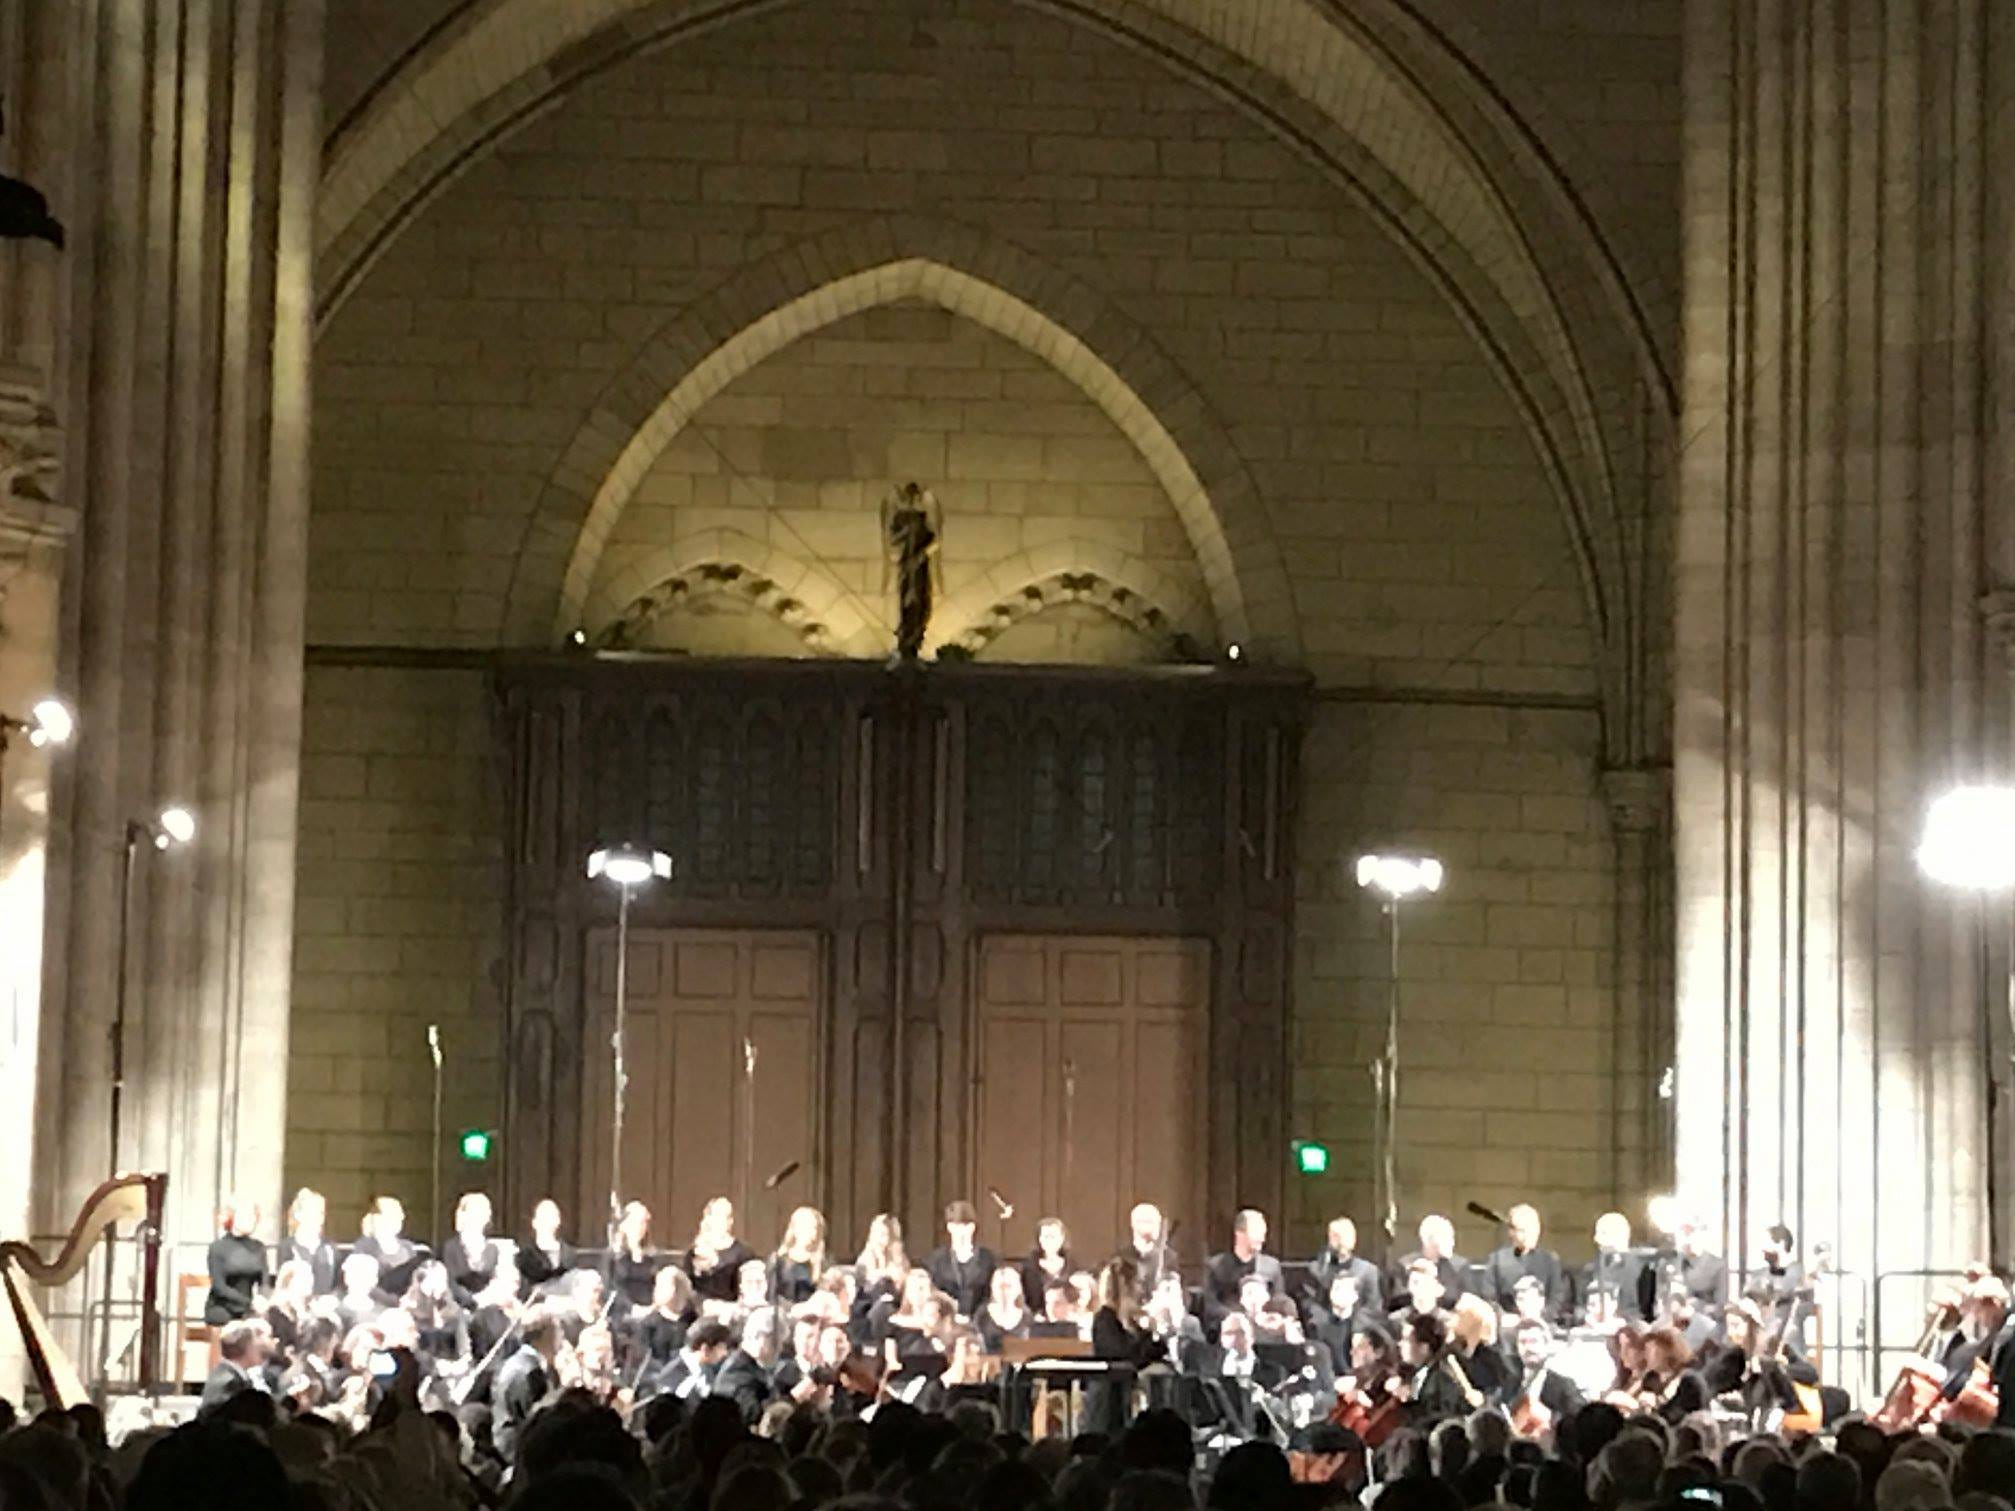 Vespers at Notre Dame Cathedral, one of the most moving experiences of my life.